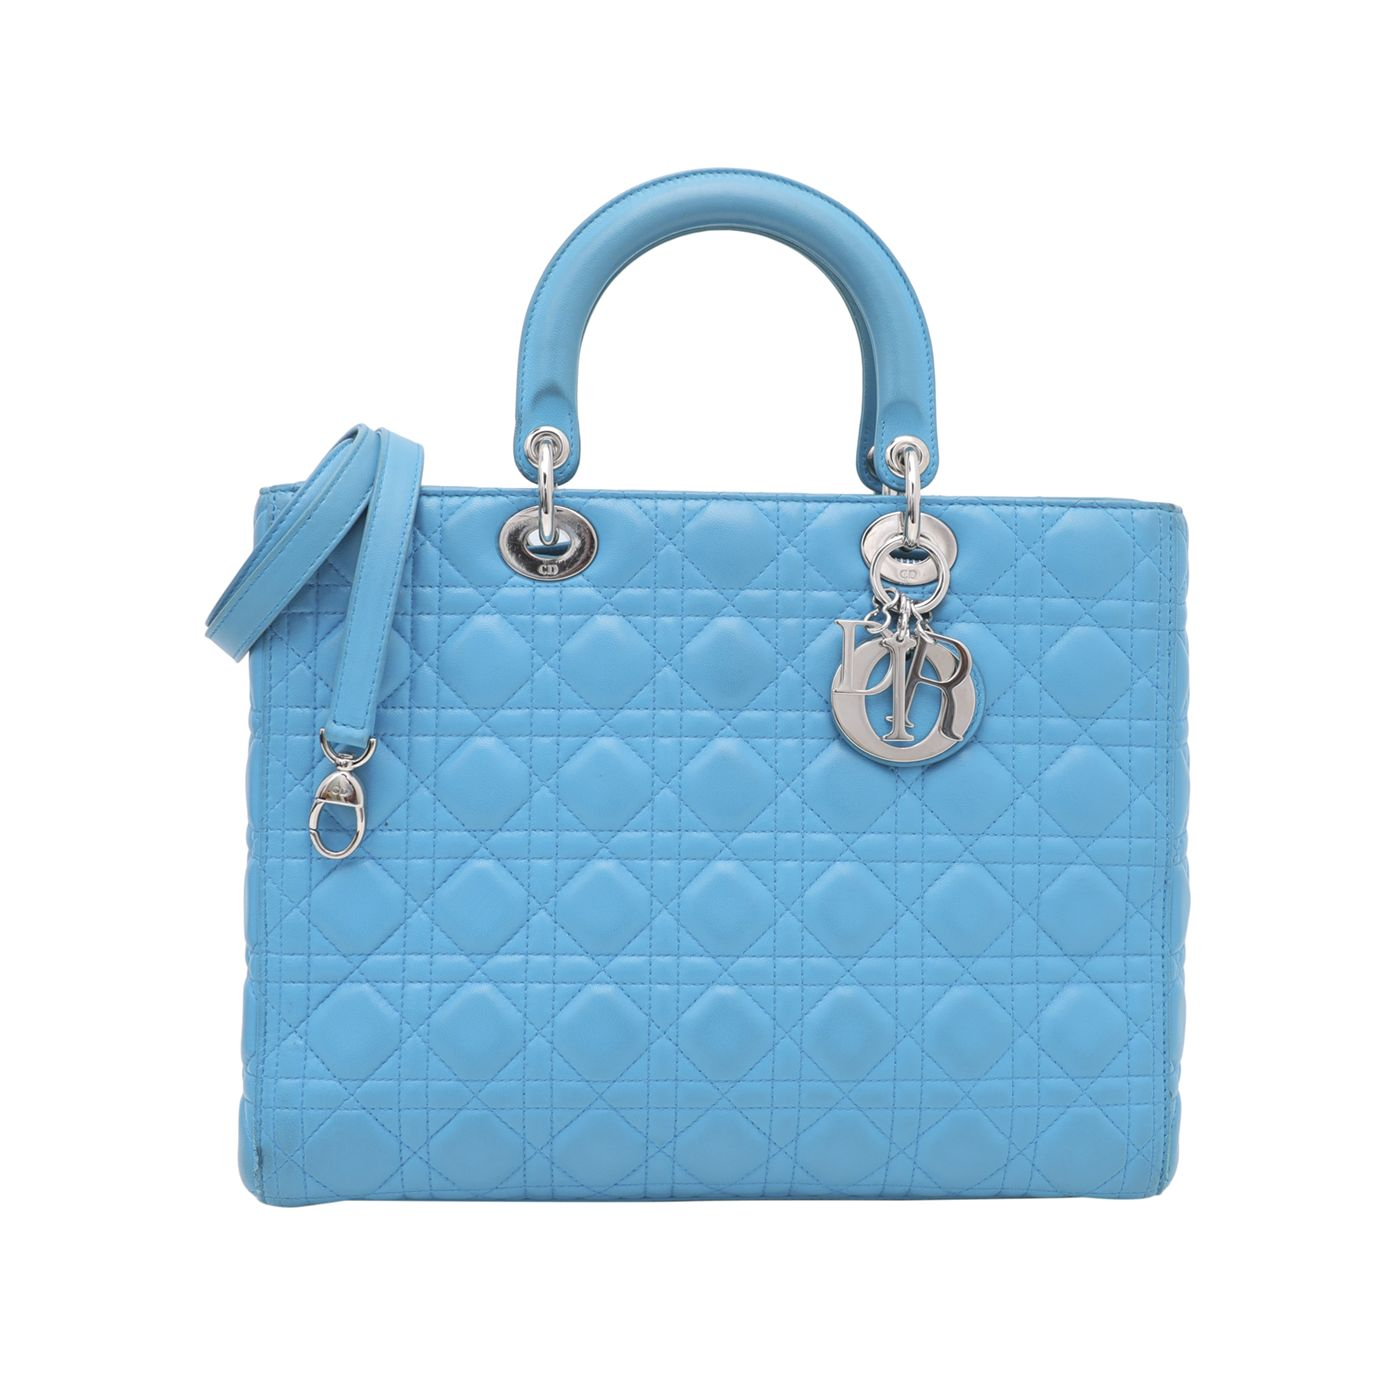 Christian Dior Turquoise Lady Dior Large Bag